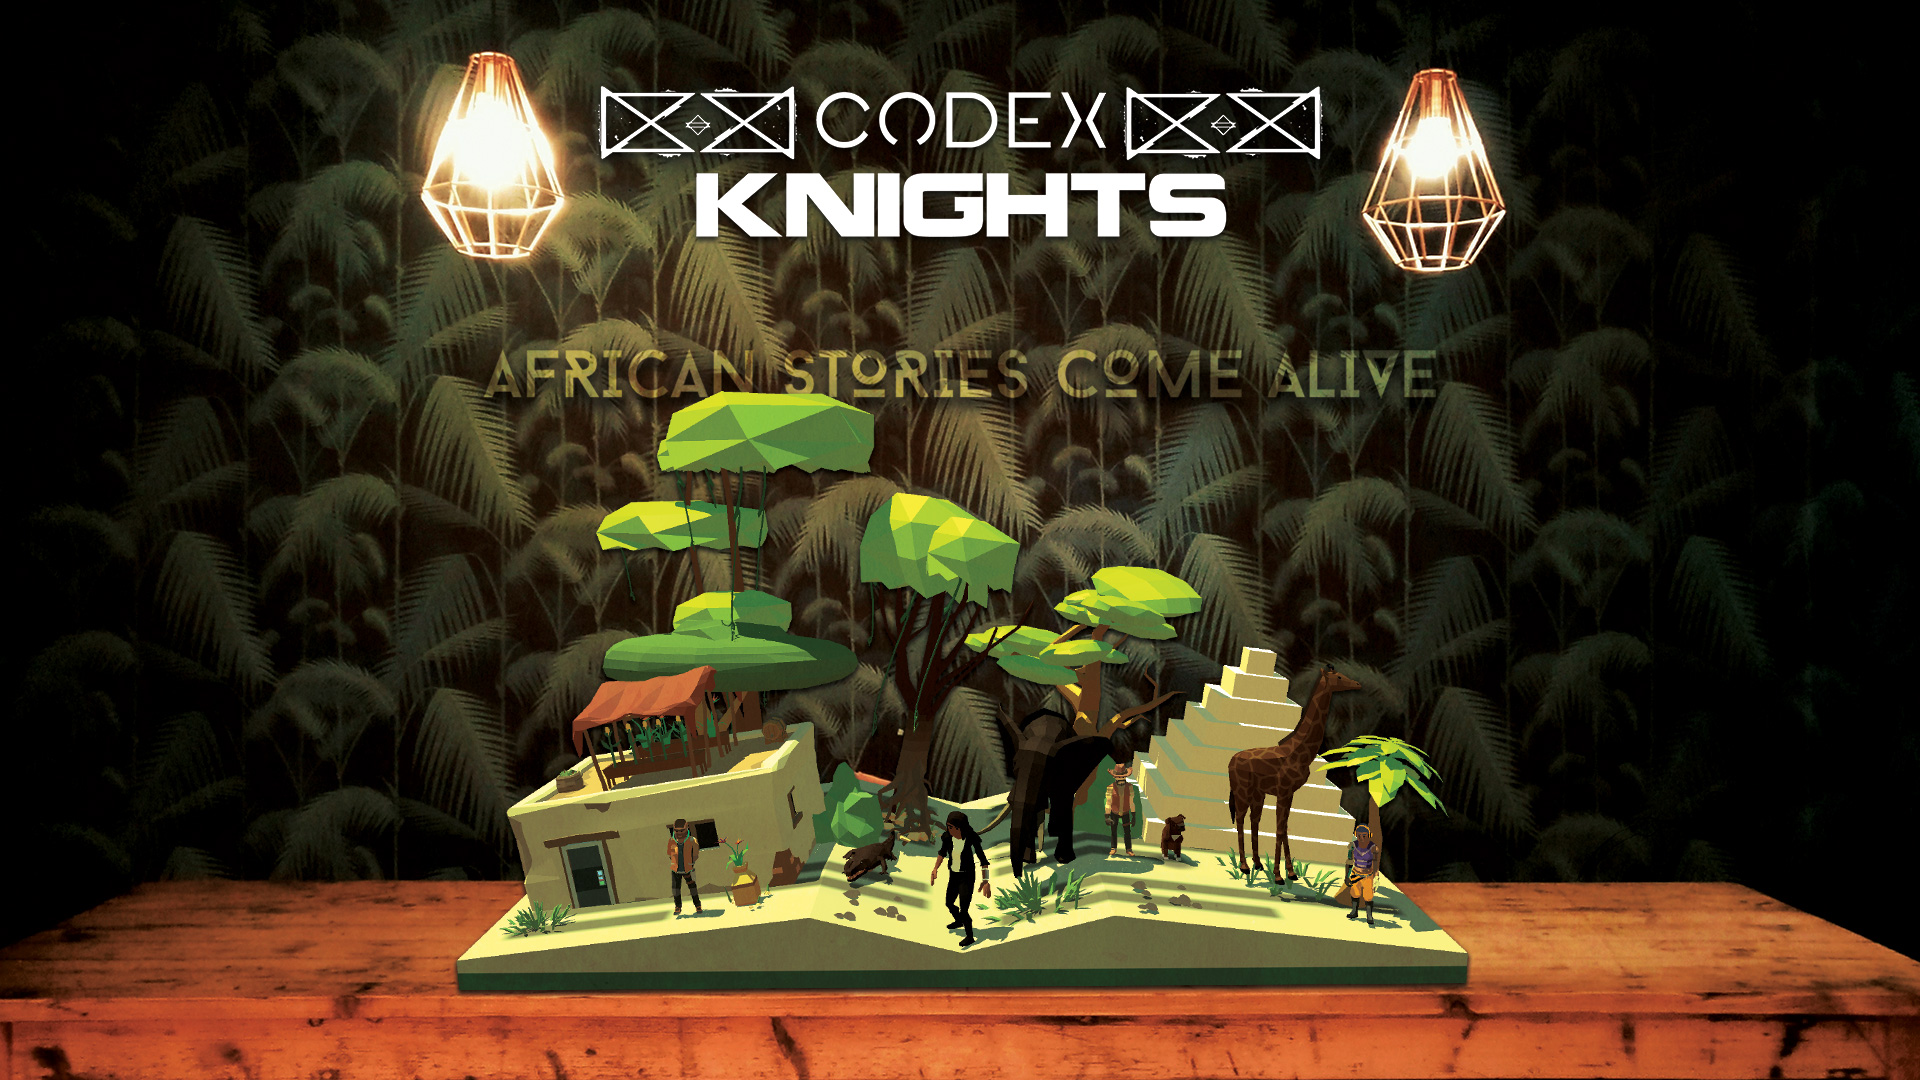 Codex Knights